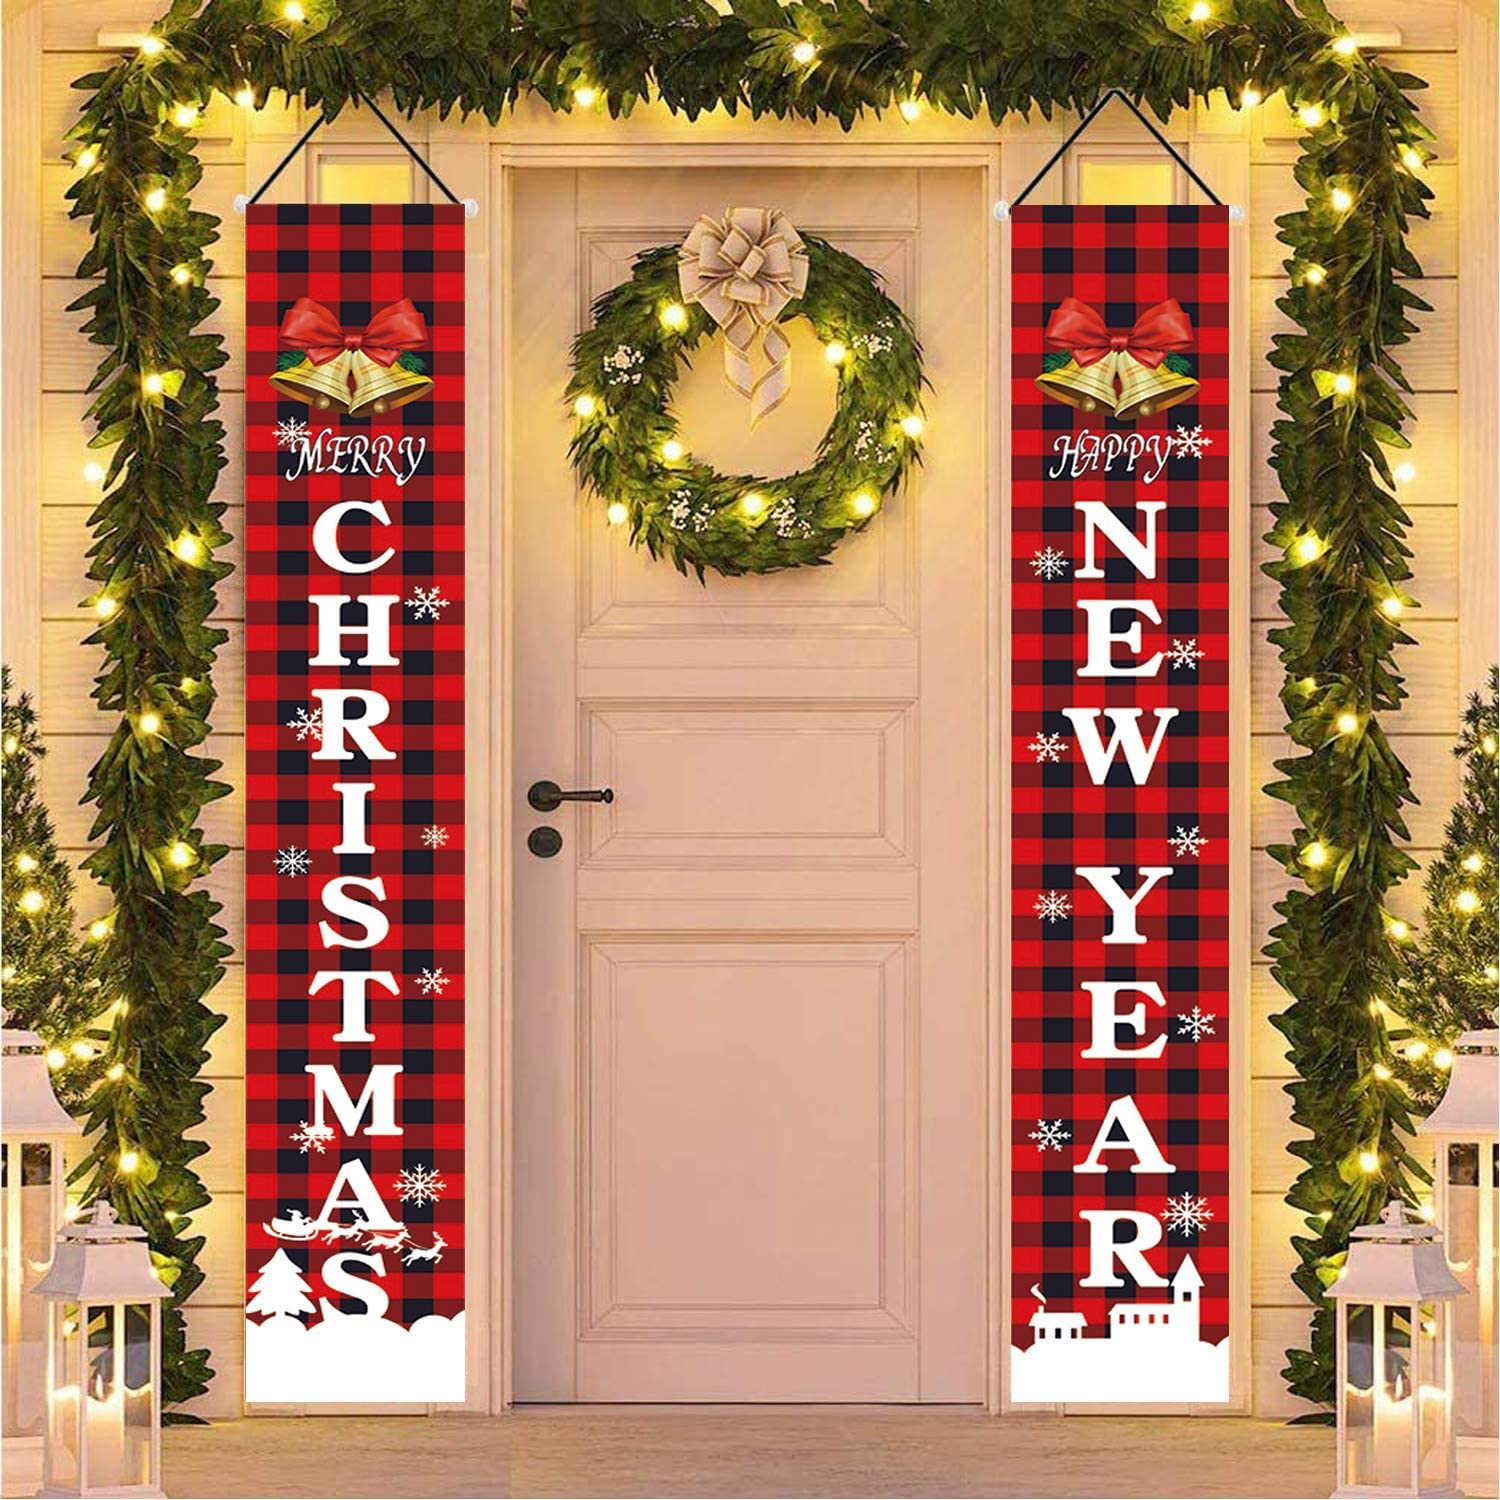 Probsin Merry Christmas Decorations Porch Signs Red Buffalo Plaid Banners Xmas Holiday Day Decor Happy New Year for Home Front Door Outdoor Wall Hanging Decor Yard Indoor Party Lawn Garden Decoration